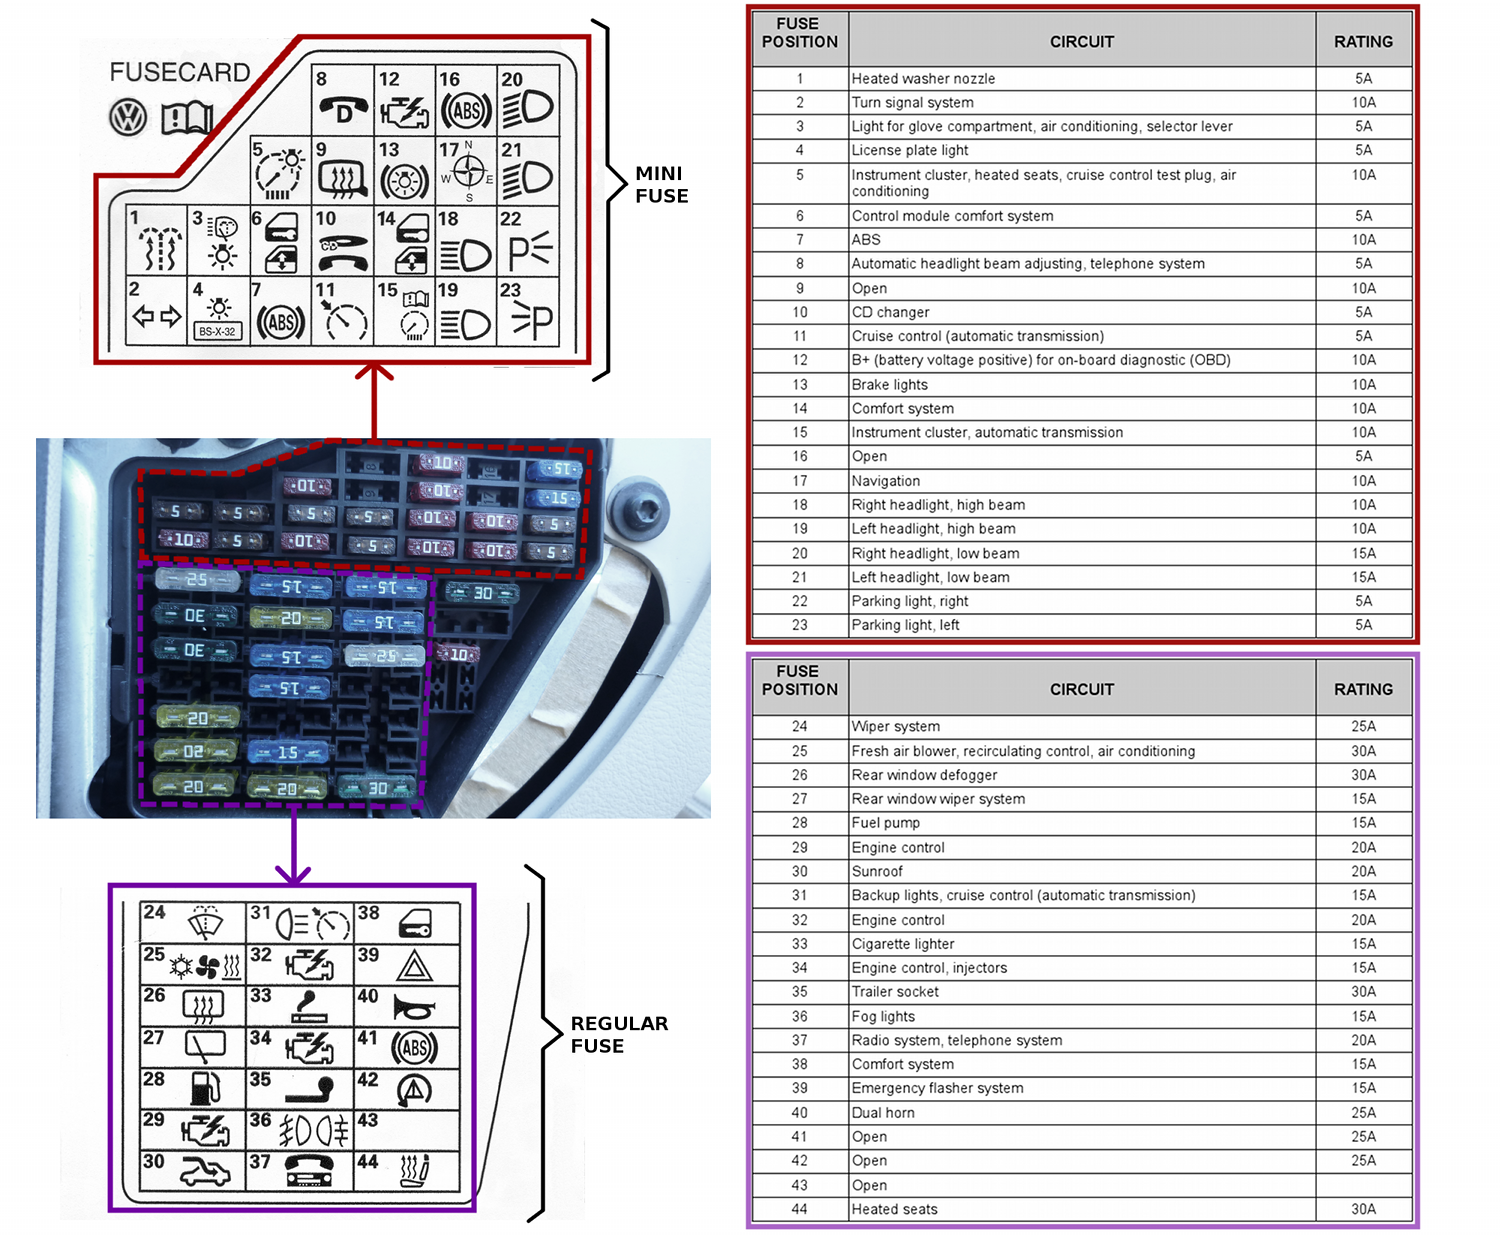 vw passat fuse box diagram RbmsFlh fuses tdiclub forums 2014 jetta se fuse box layout at panicattacktreatment.co